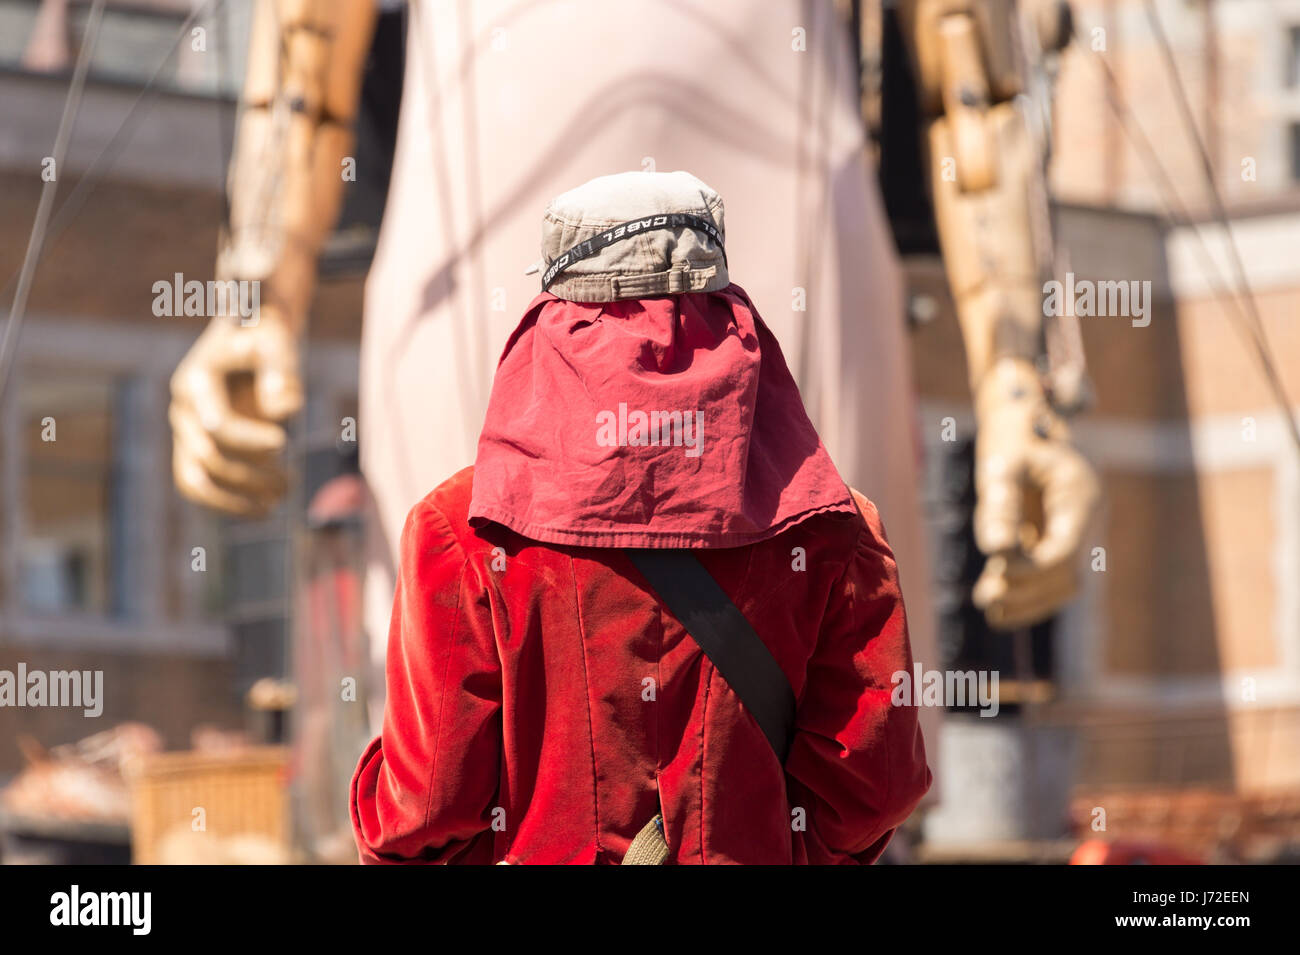 Montreal, CA - 20 May 2017: Royal de Luxe Giants as part of the commemorations of the 375th anniversary of Montreal - Stock Image